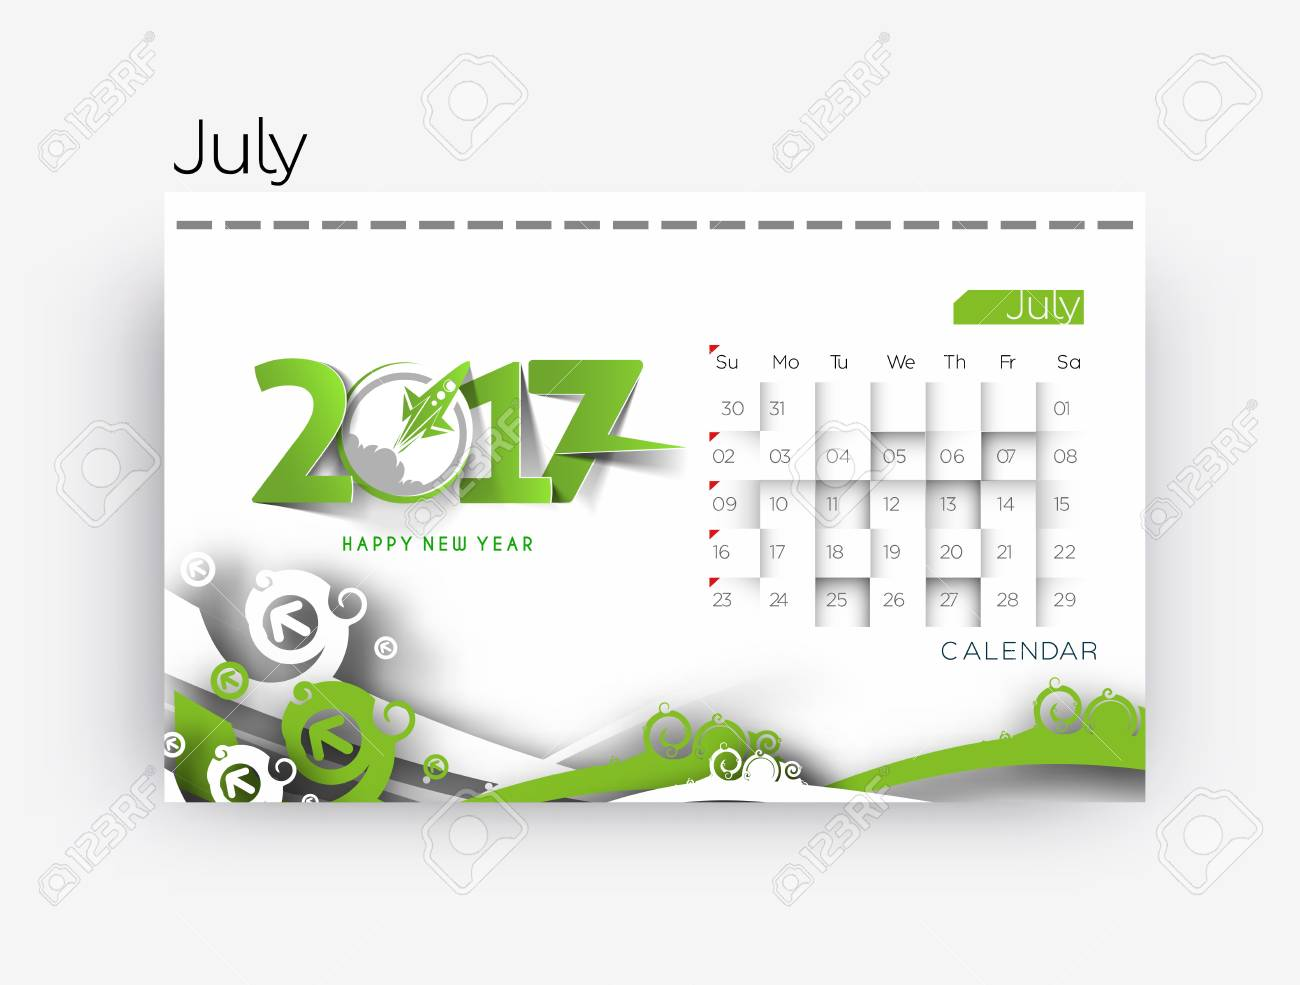 happy new year 2017 calendar new year holiday design elements for holiday cards calendar